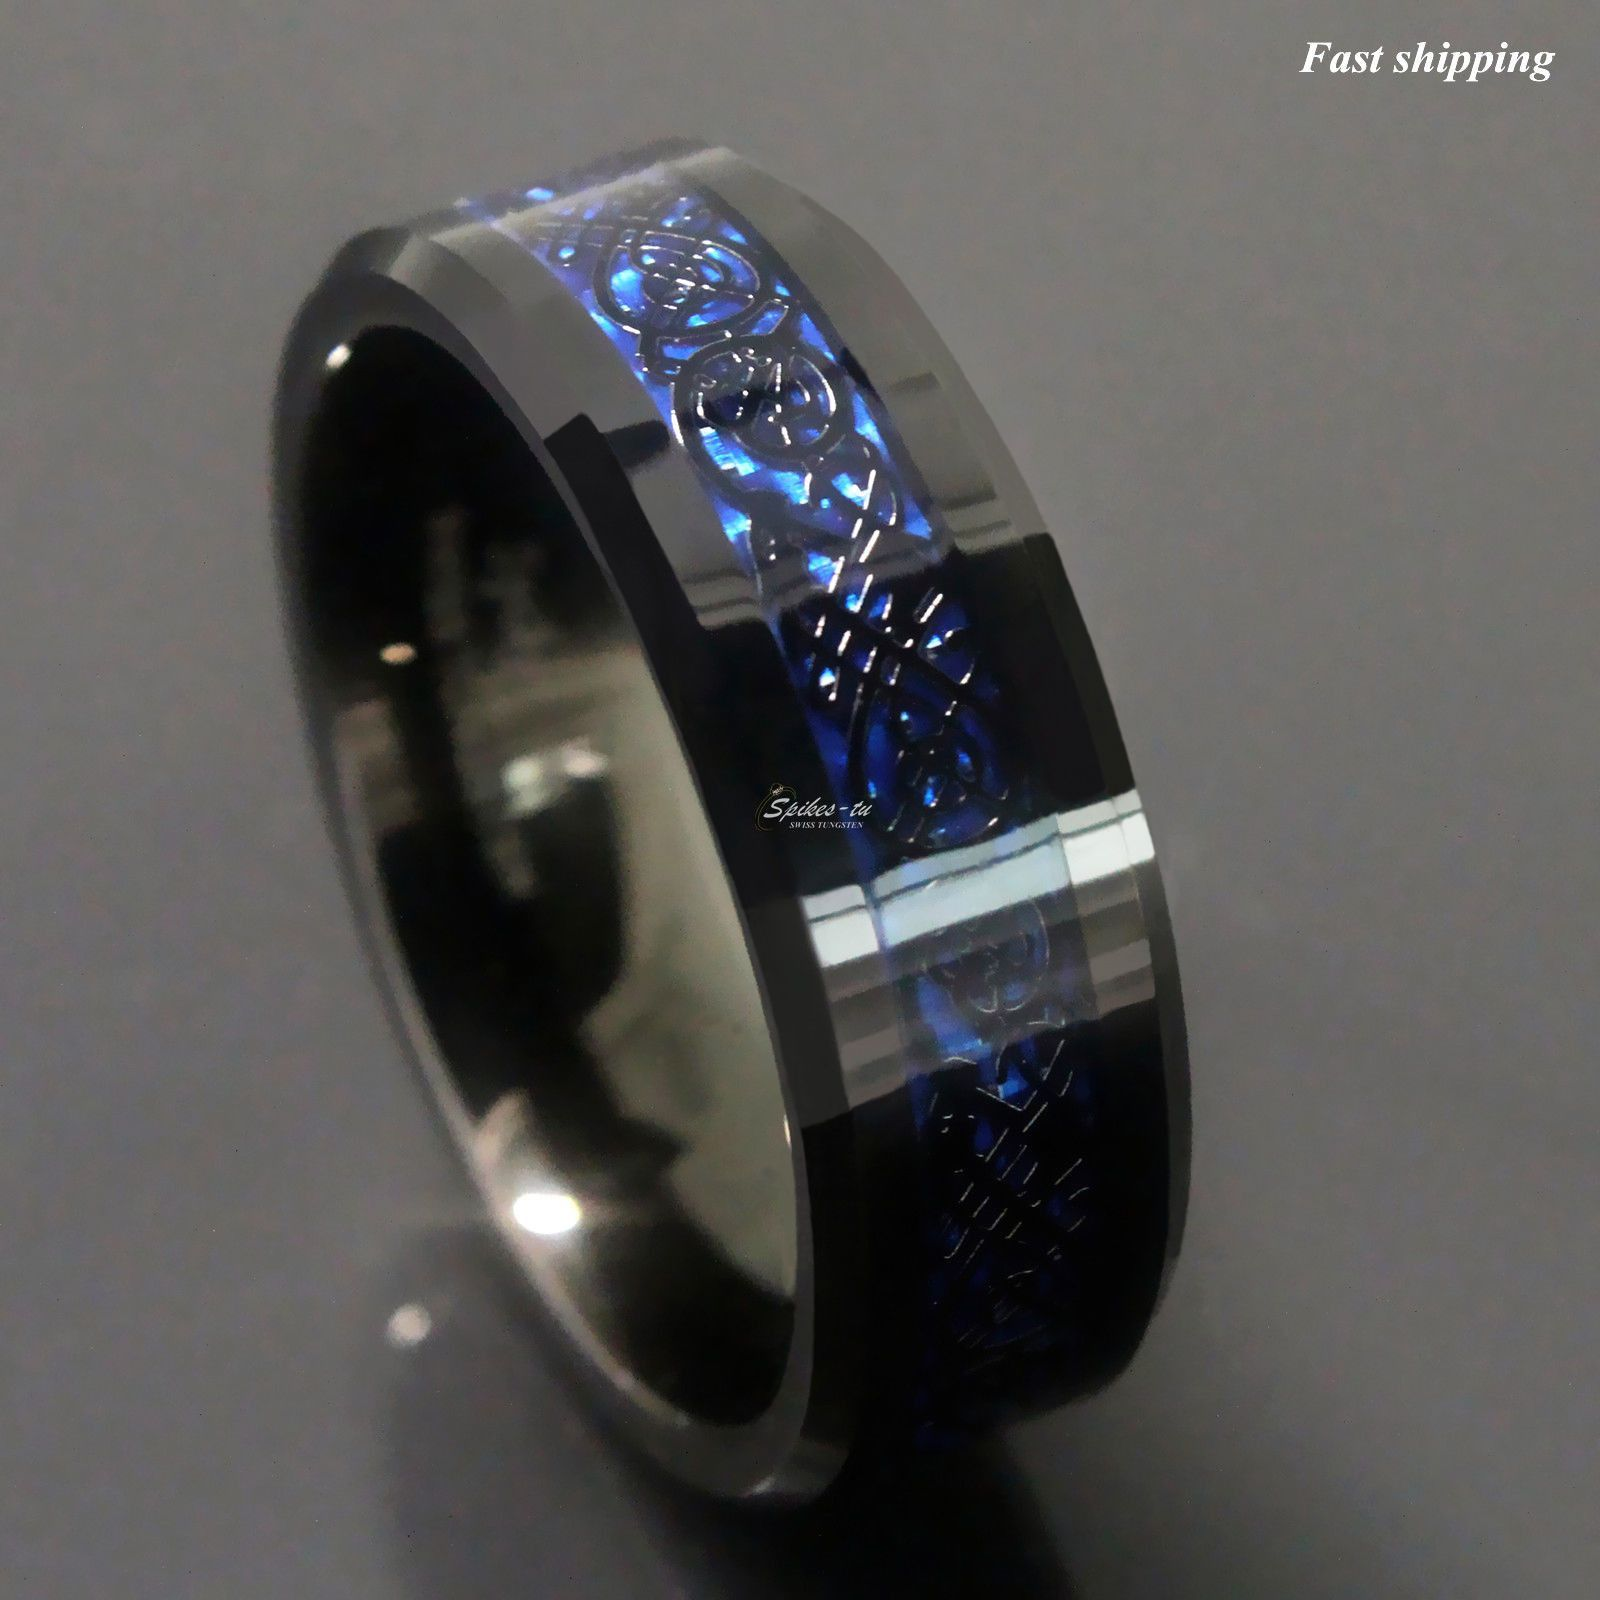 rings jh b band wedding comfortfit celtic blackceltic tungsten jewelry drgnconva dragon unisex ring style bling